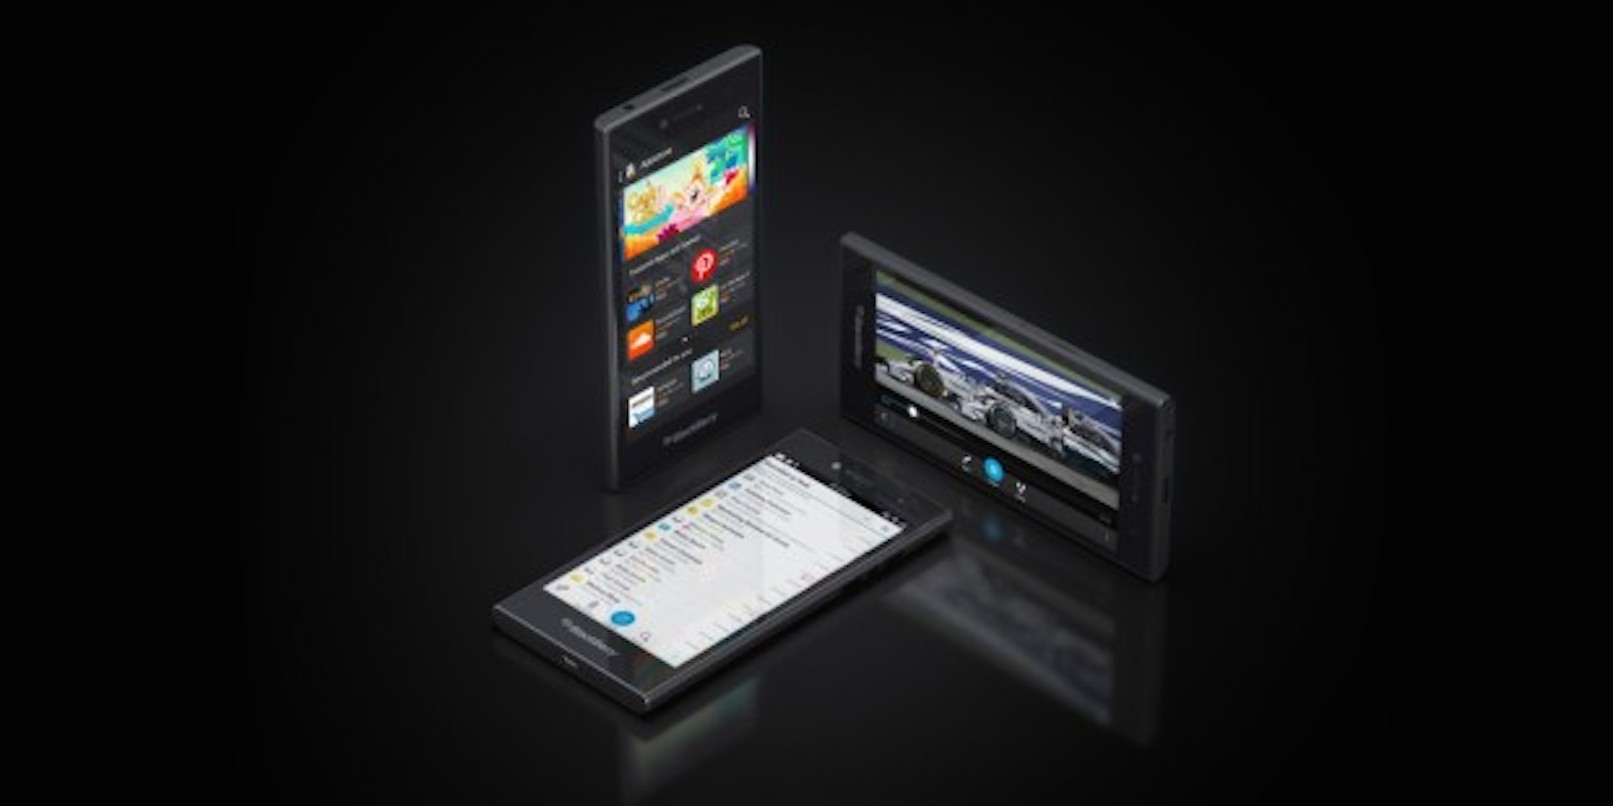 The BlackBerry Leap is now rolling out globally for 'young power professionals,' seriously ...